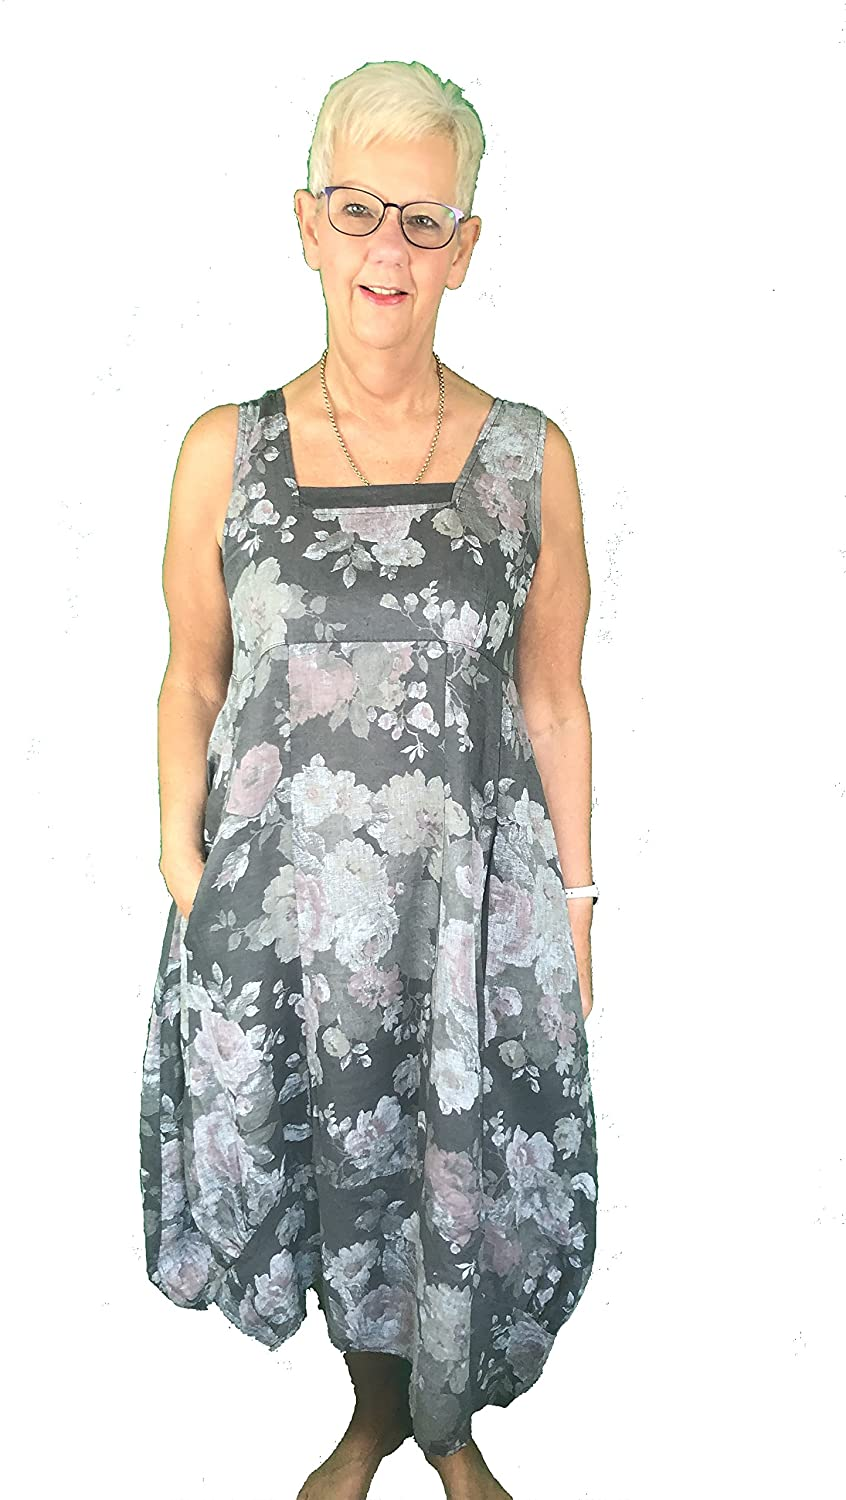 Pamper Yourself Now ltd Dark Grey Long Empire line Floral Dress with Square Neck and Two Front Pockets 100% Linen. One Size Recommended Fits Size 12-18 Made in Italy (AA65)